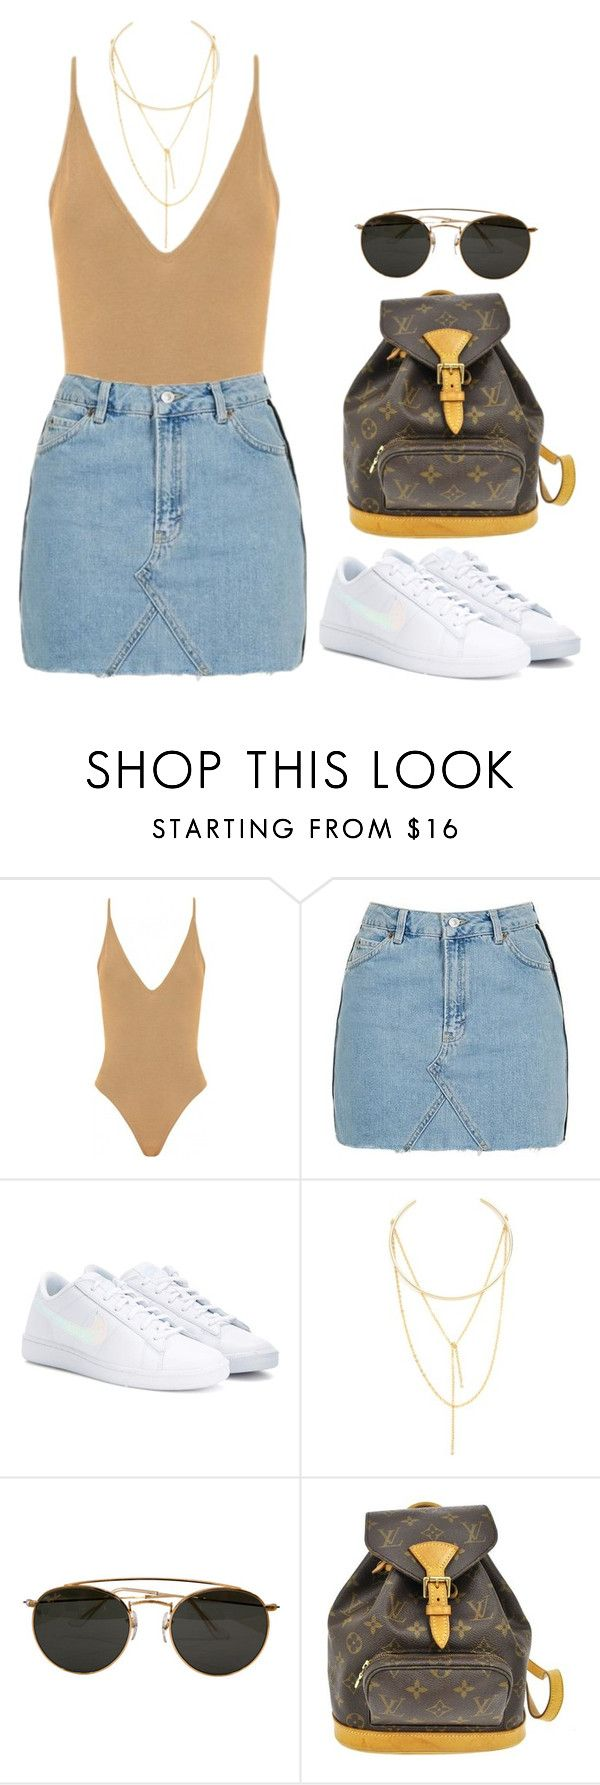 """#"" by bruna-linda-12 on Polyvore featuring moda, Topshop, NIKE, Jules Smith, Ray-Ban e Louis Vuitton"